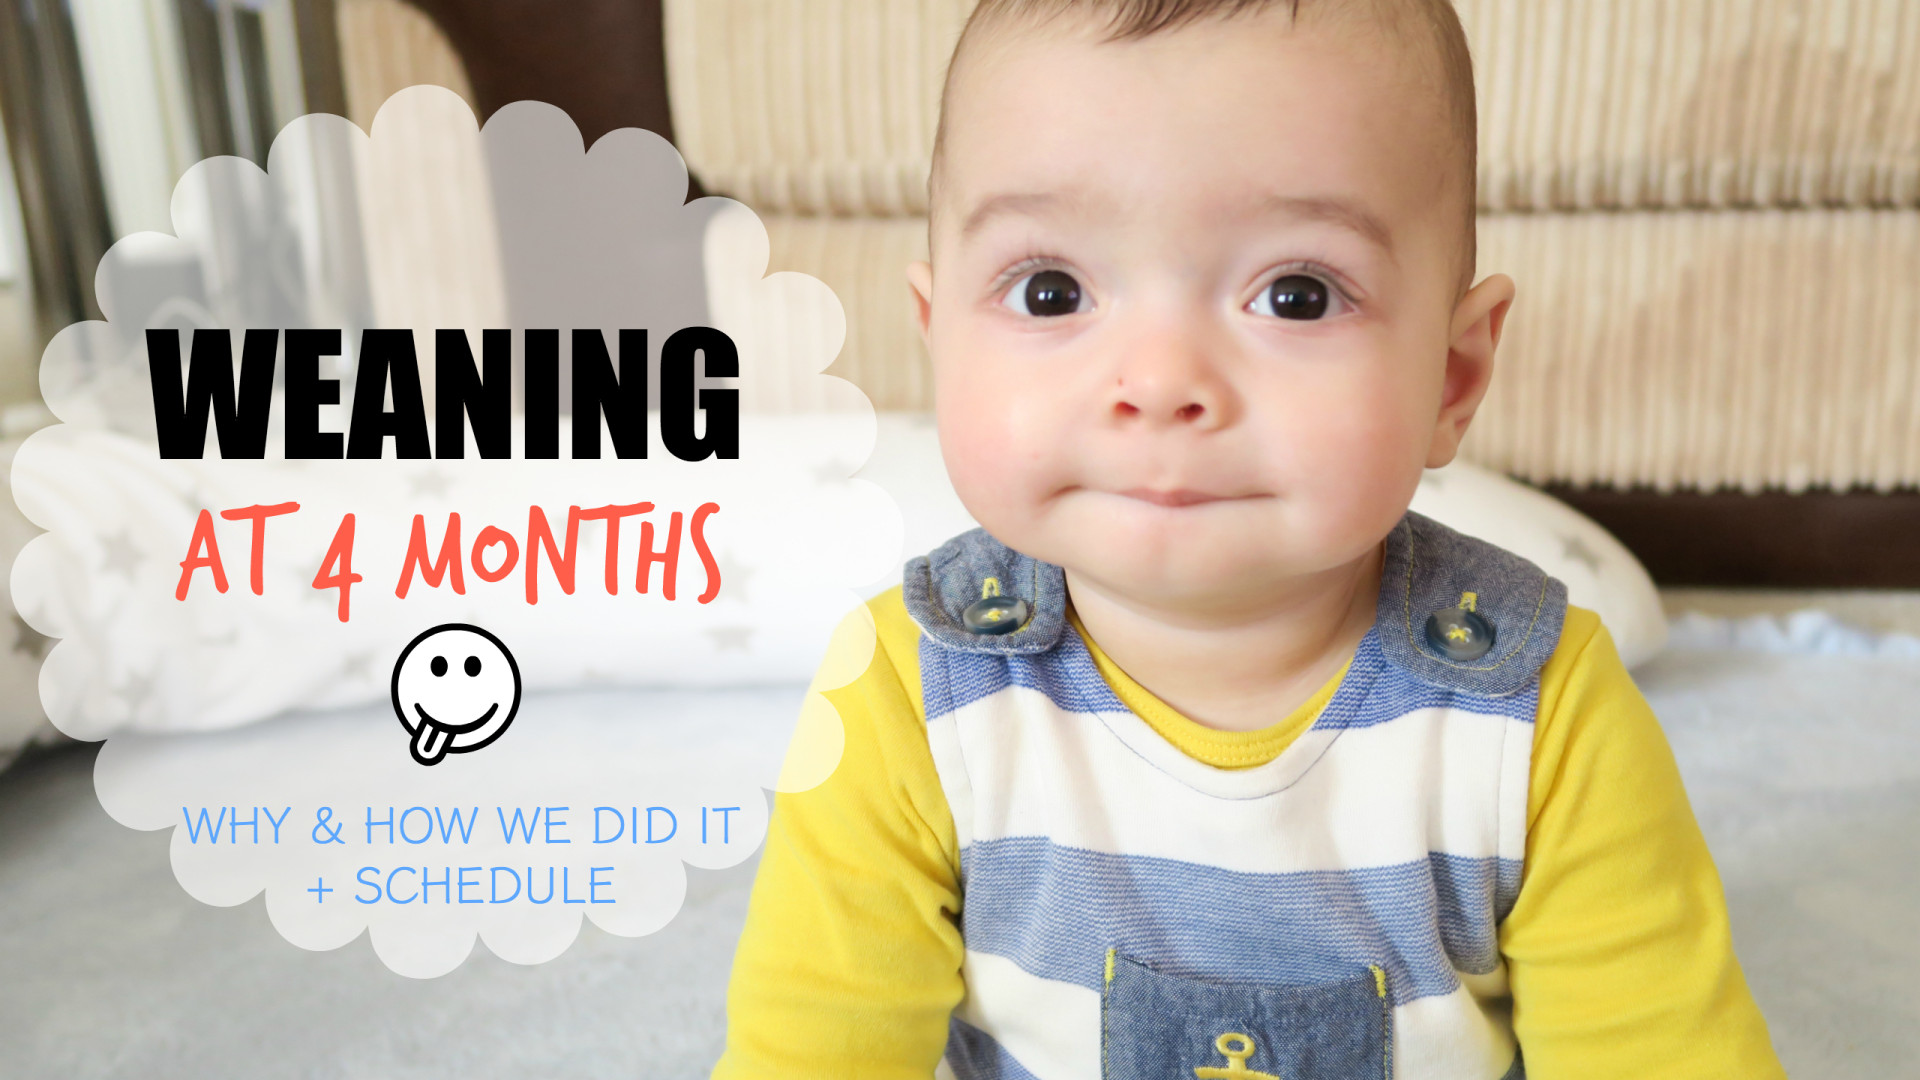 Weaning Baby At 4 Months Why and How We Did It, Equipment, Schedule and Routine